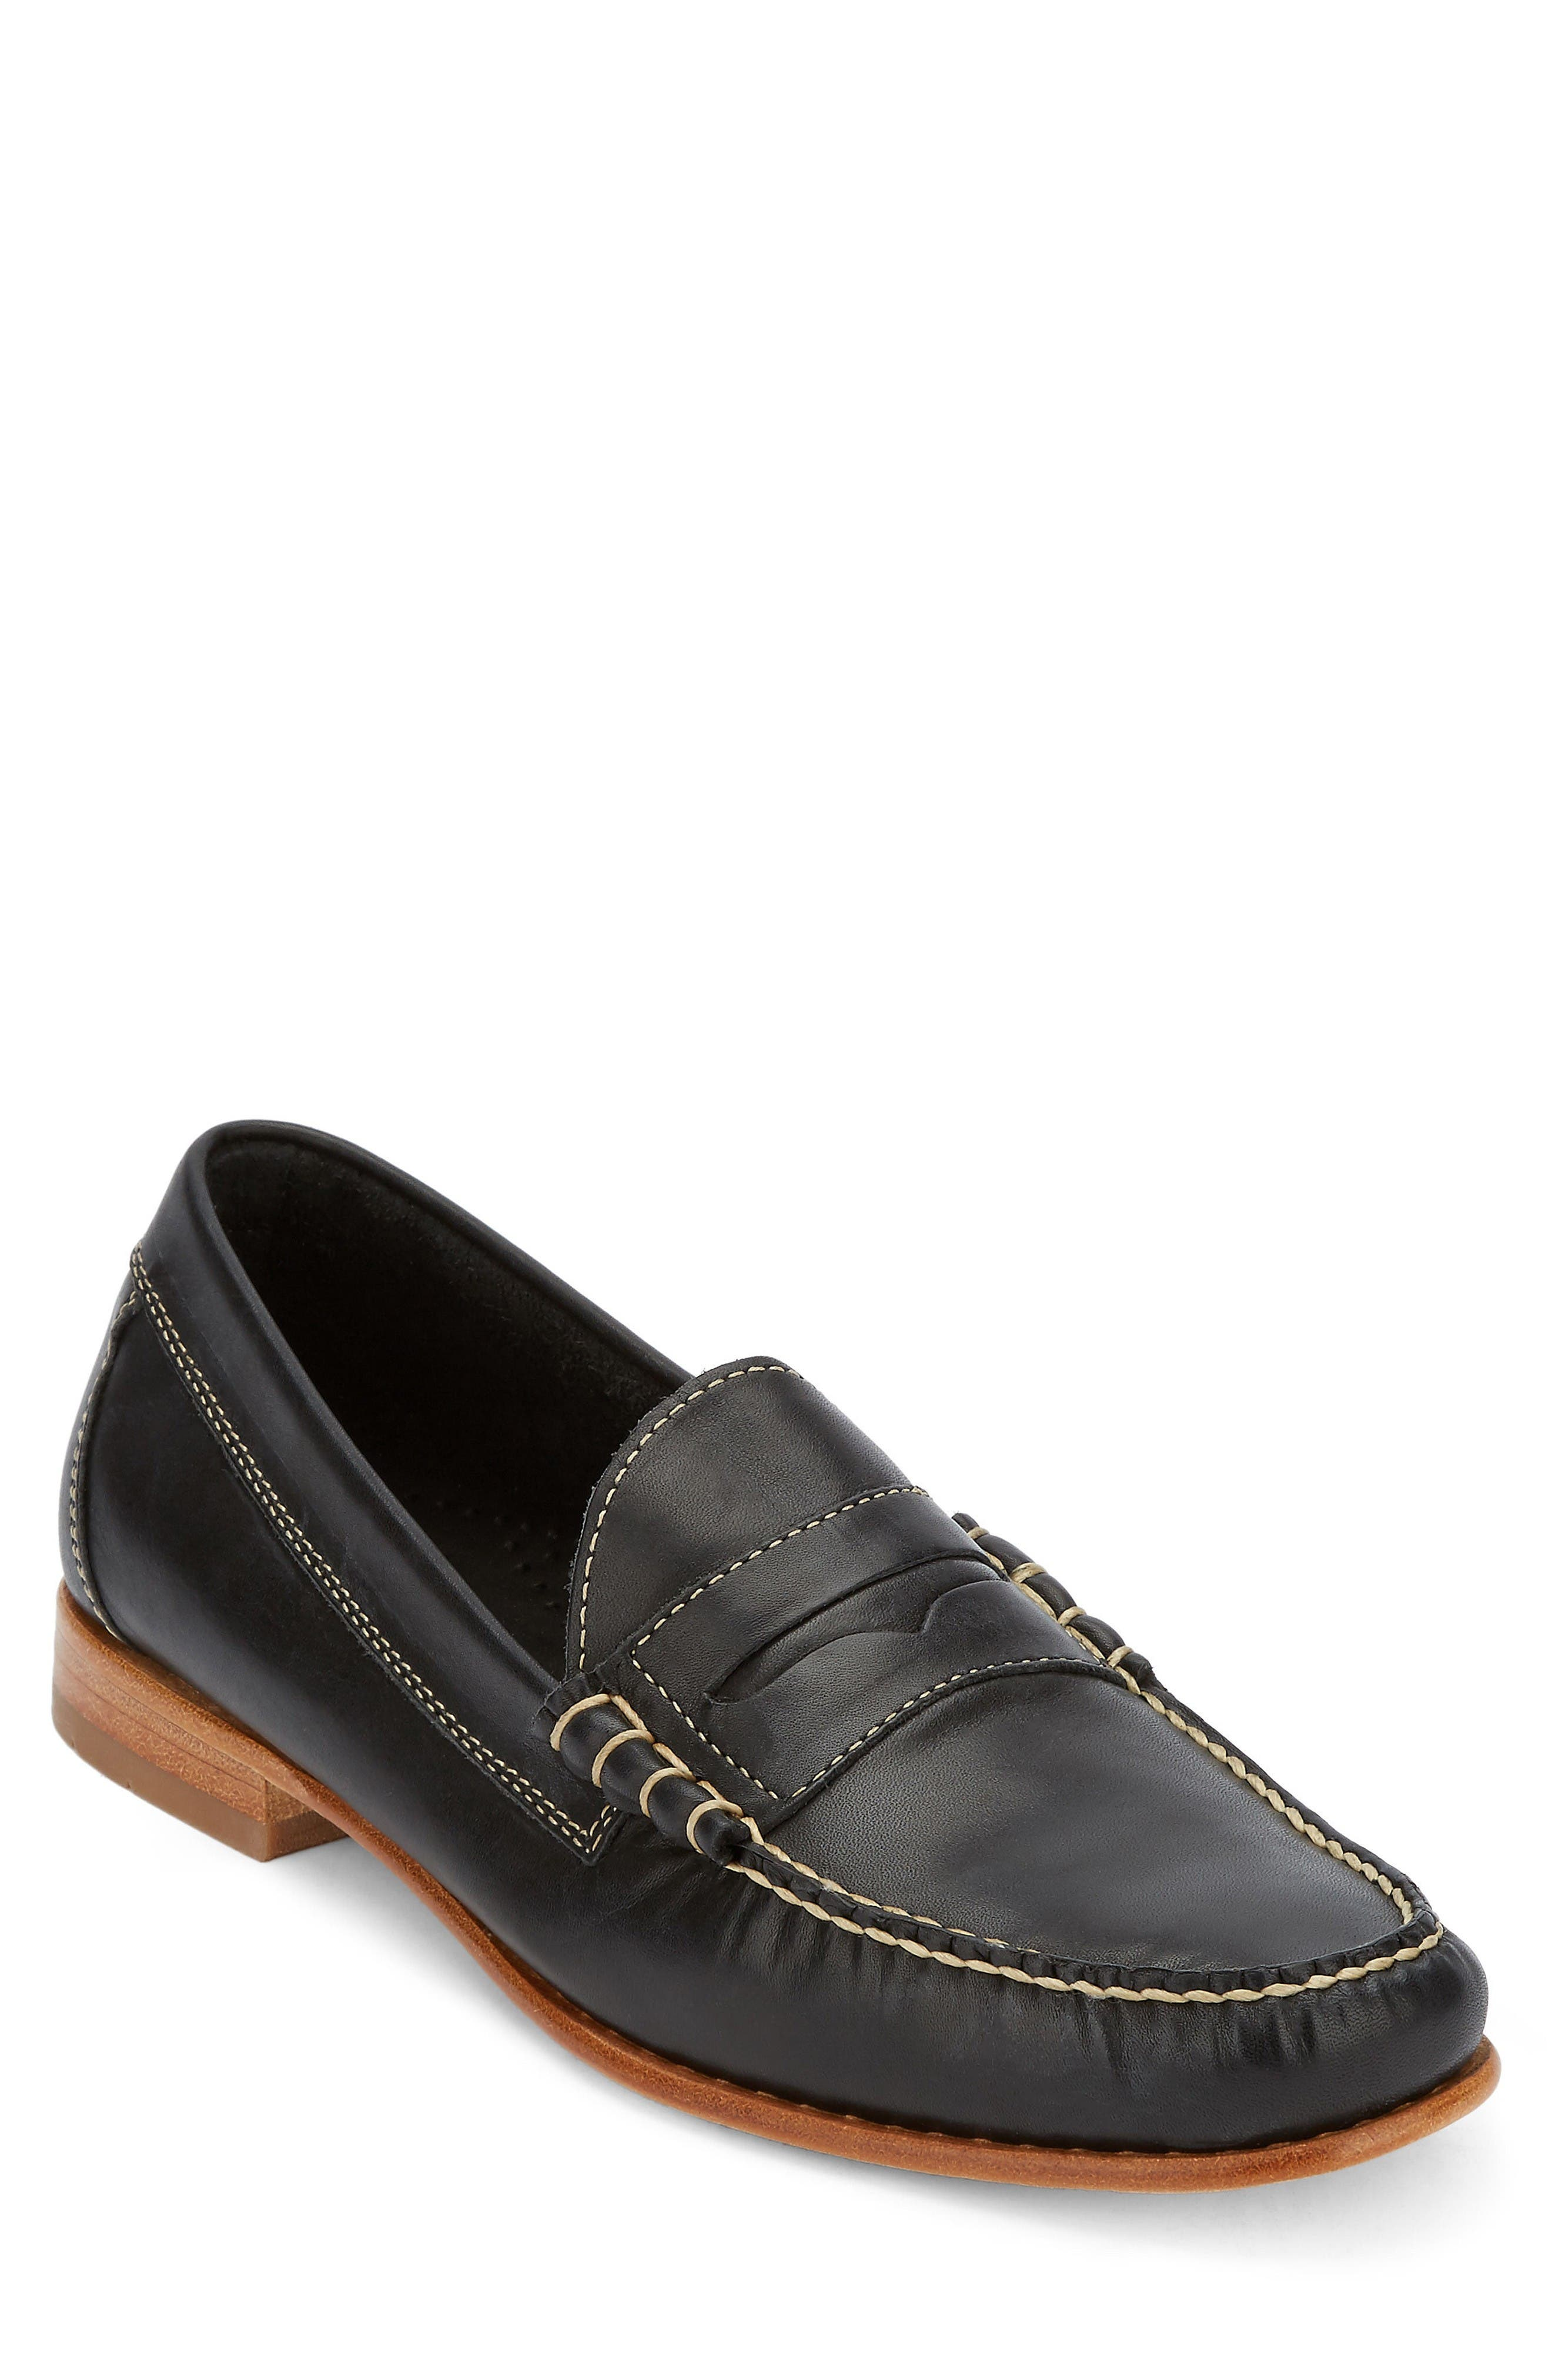 Alternate Image 1 Selected - G.H. Bass & Co. Weejuns Lambert Penny Loafer (Men)